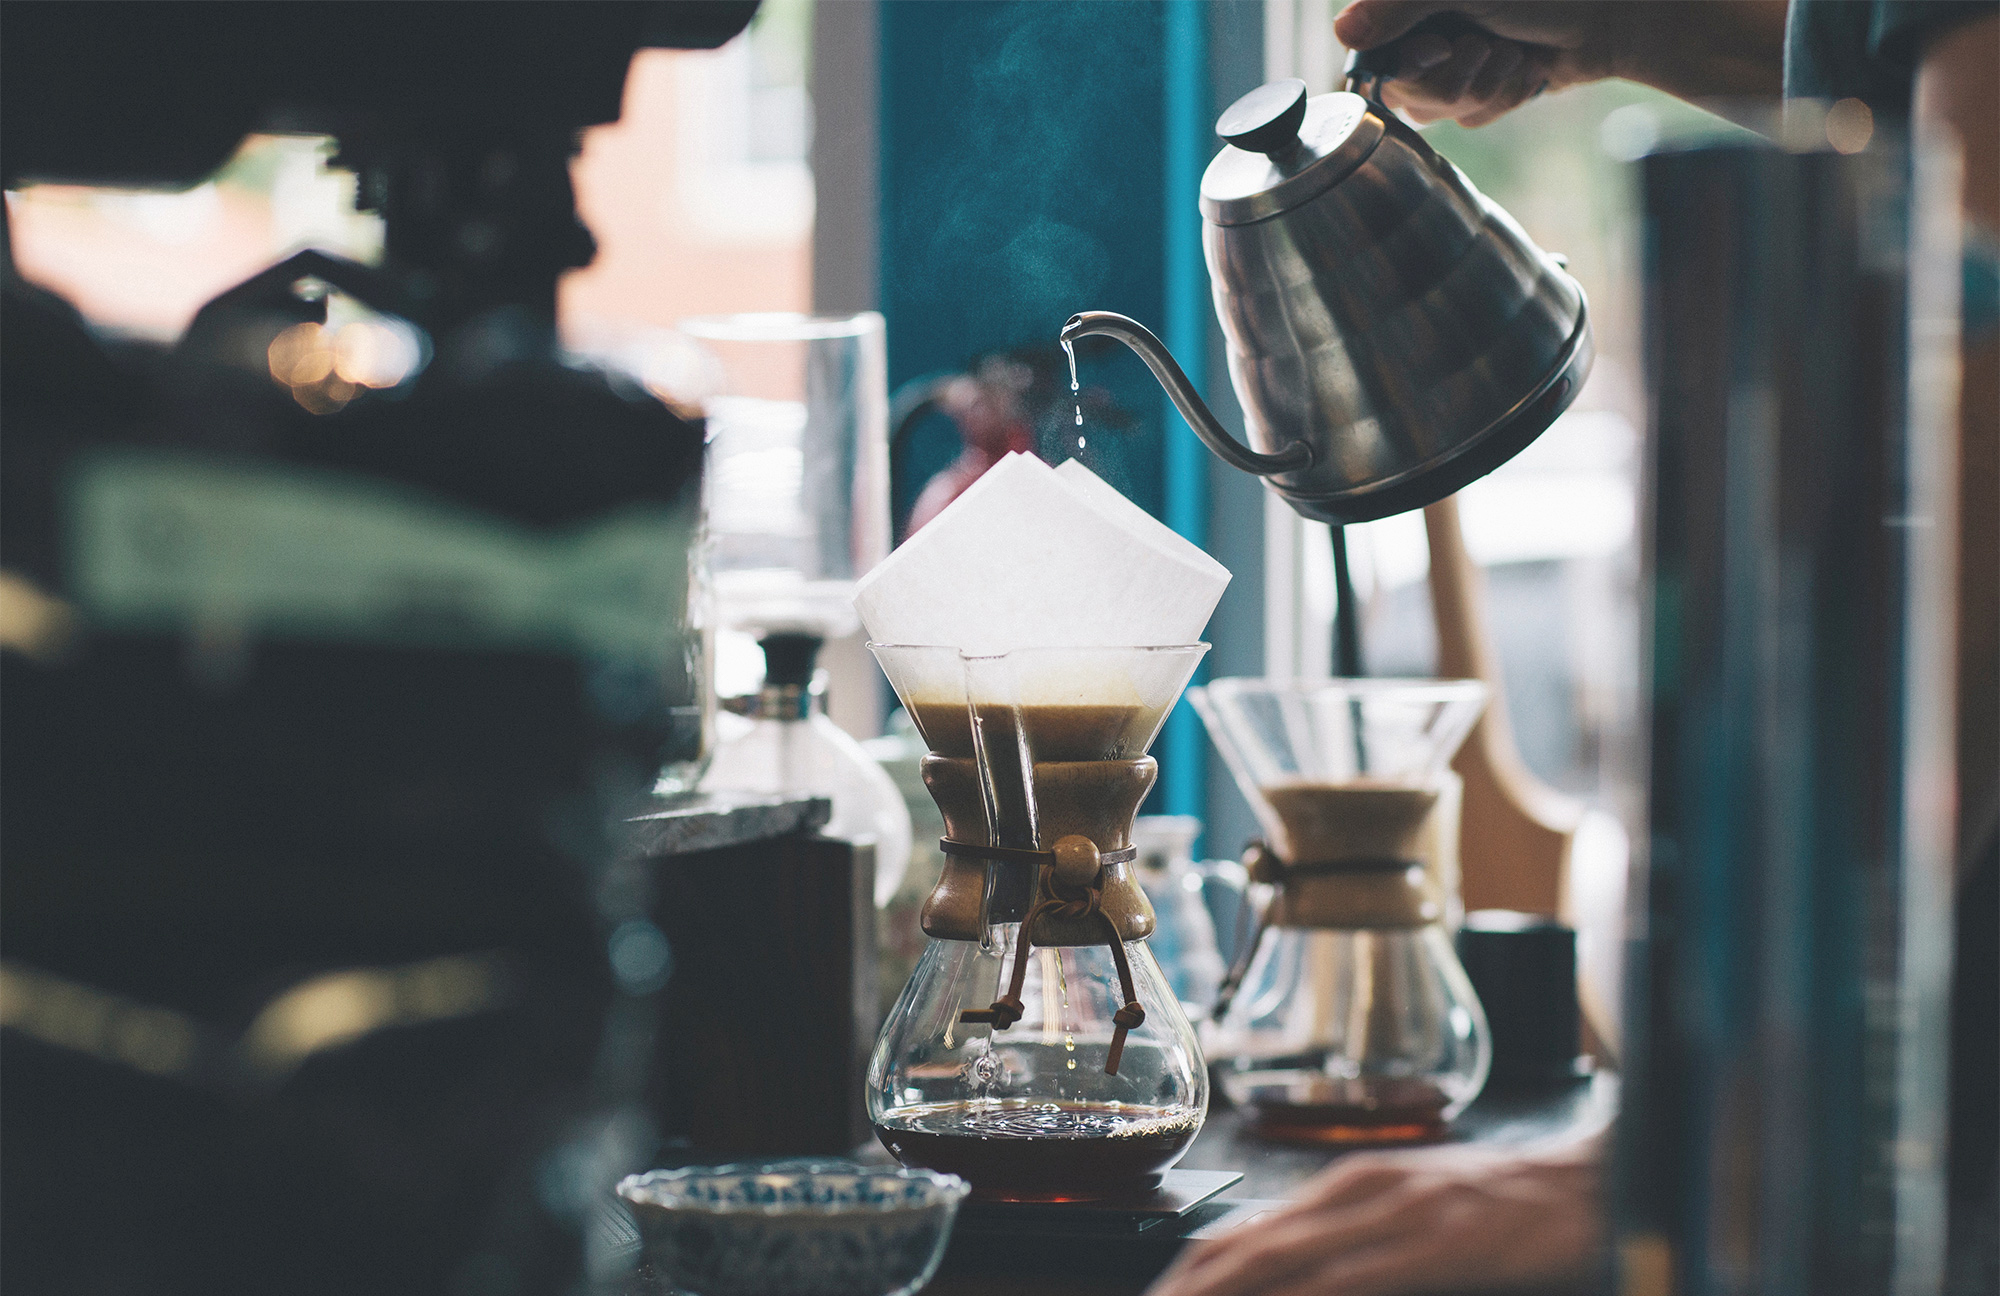 The Touch of Coffee